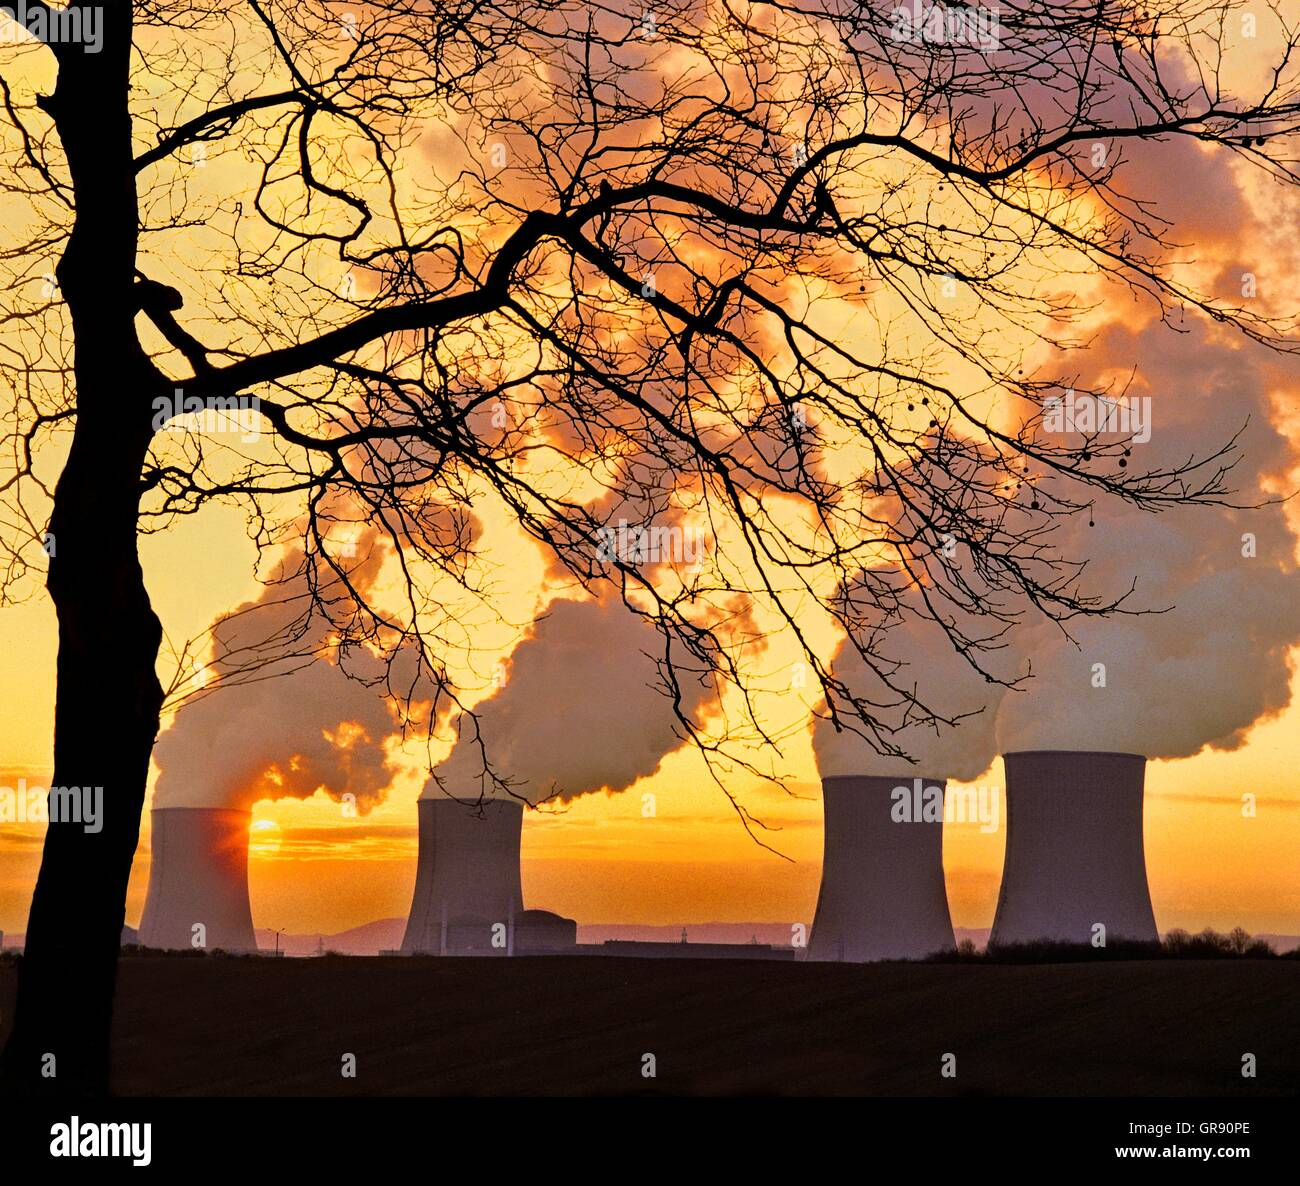 Nuclear Power Station Cattenom, Lorraine, France, In The Evening Light - Stock Image